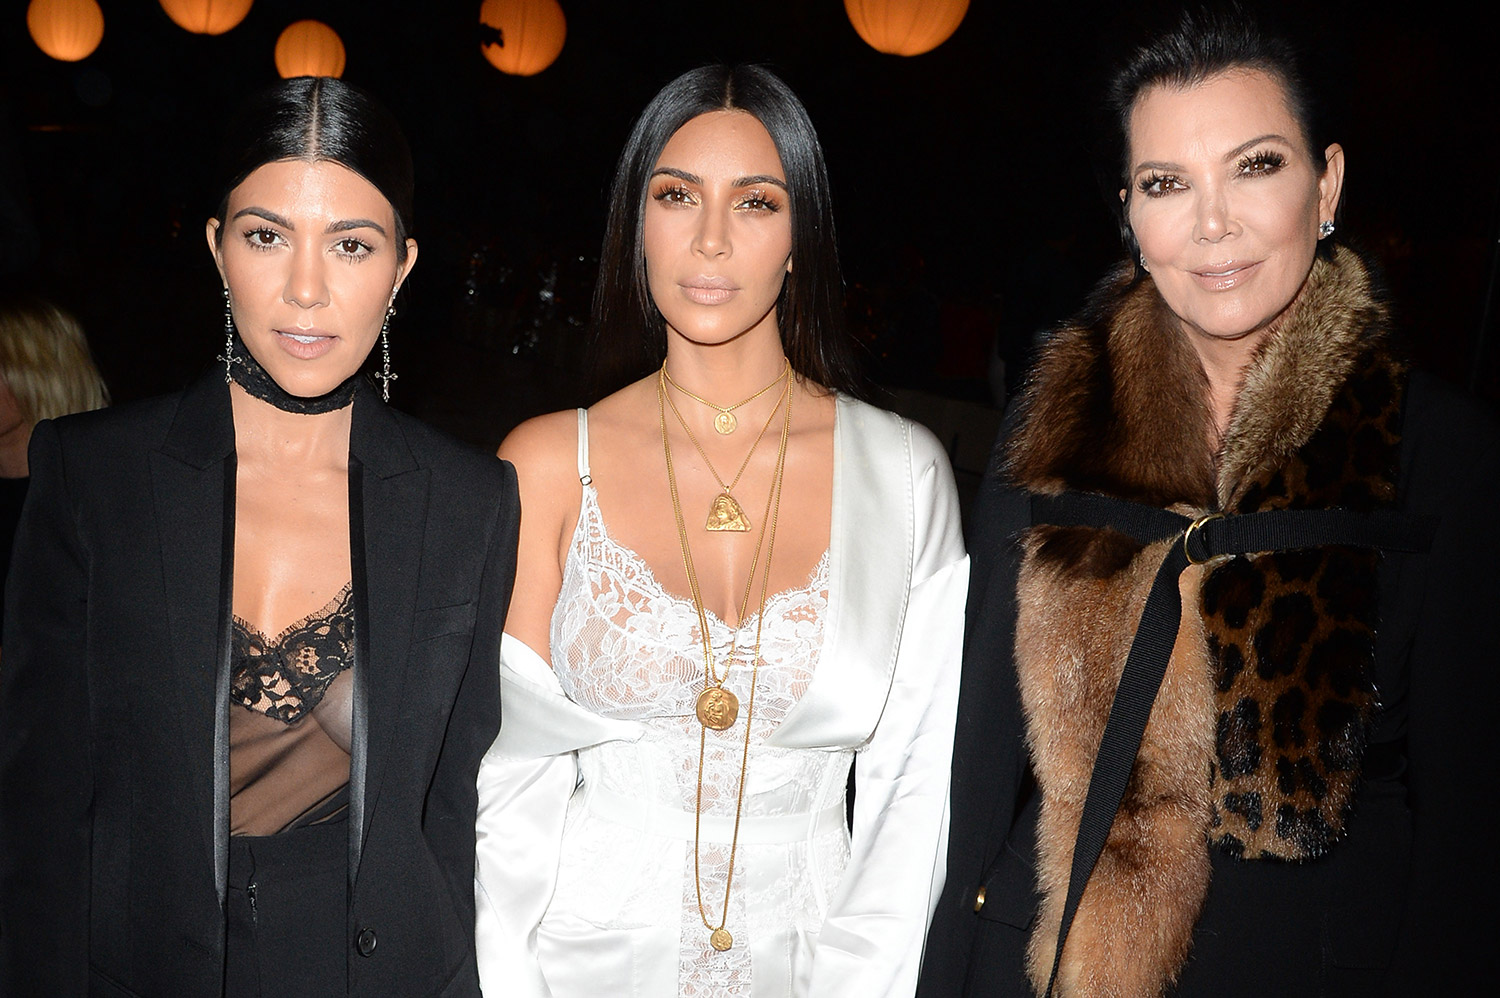 Kourtney Kardashian, Kim Kardashian and Kris Jenner